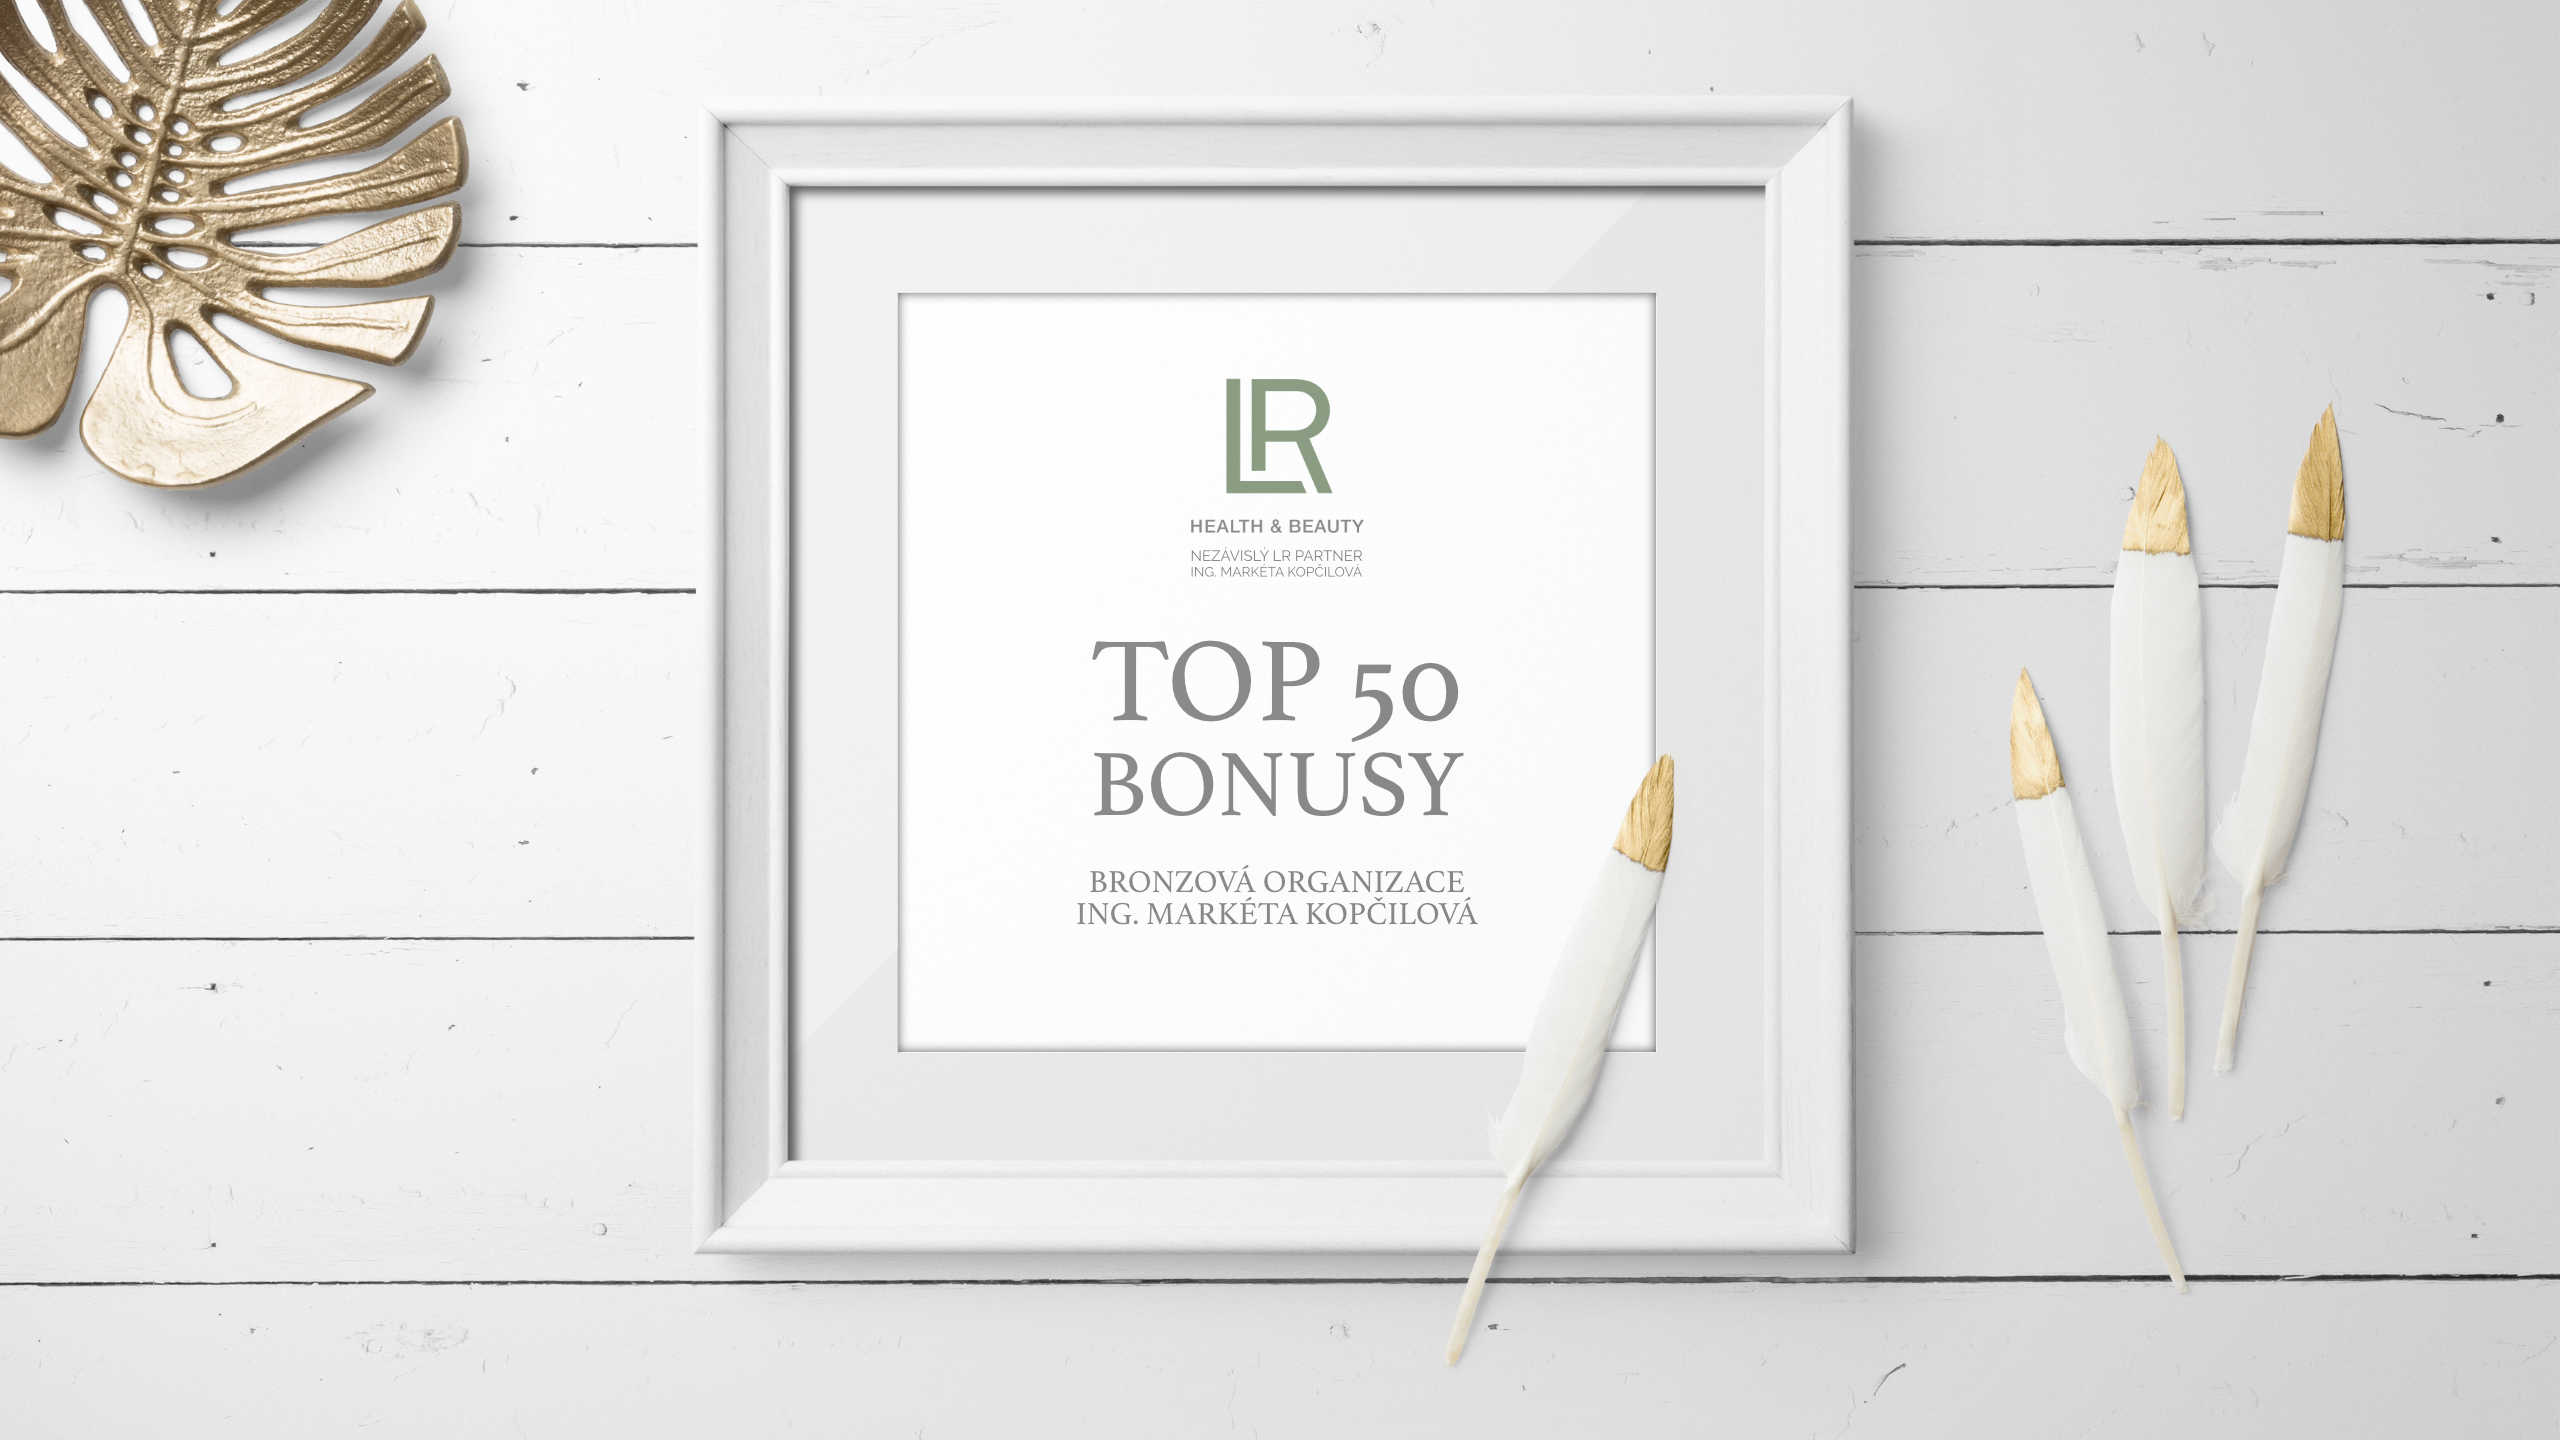 LR HEALTH & BEAUTY TOP 50 BONUSY: únor 2018